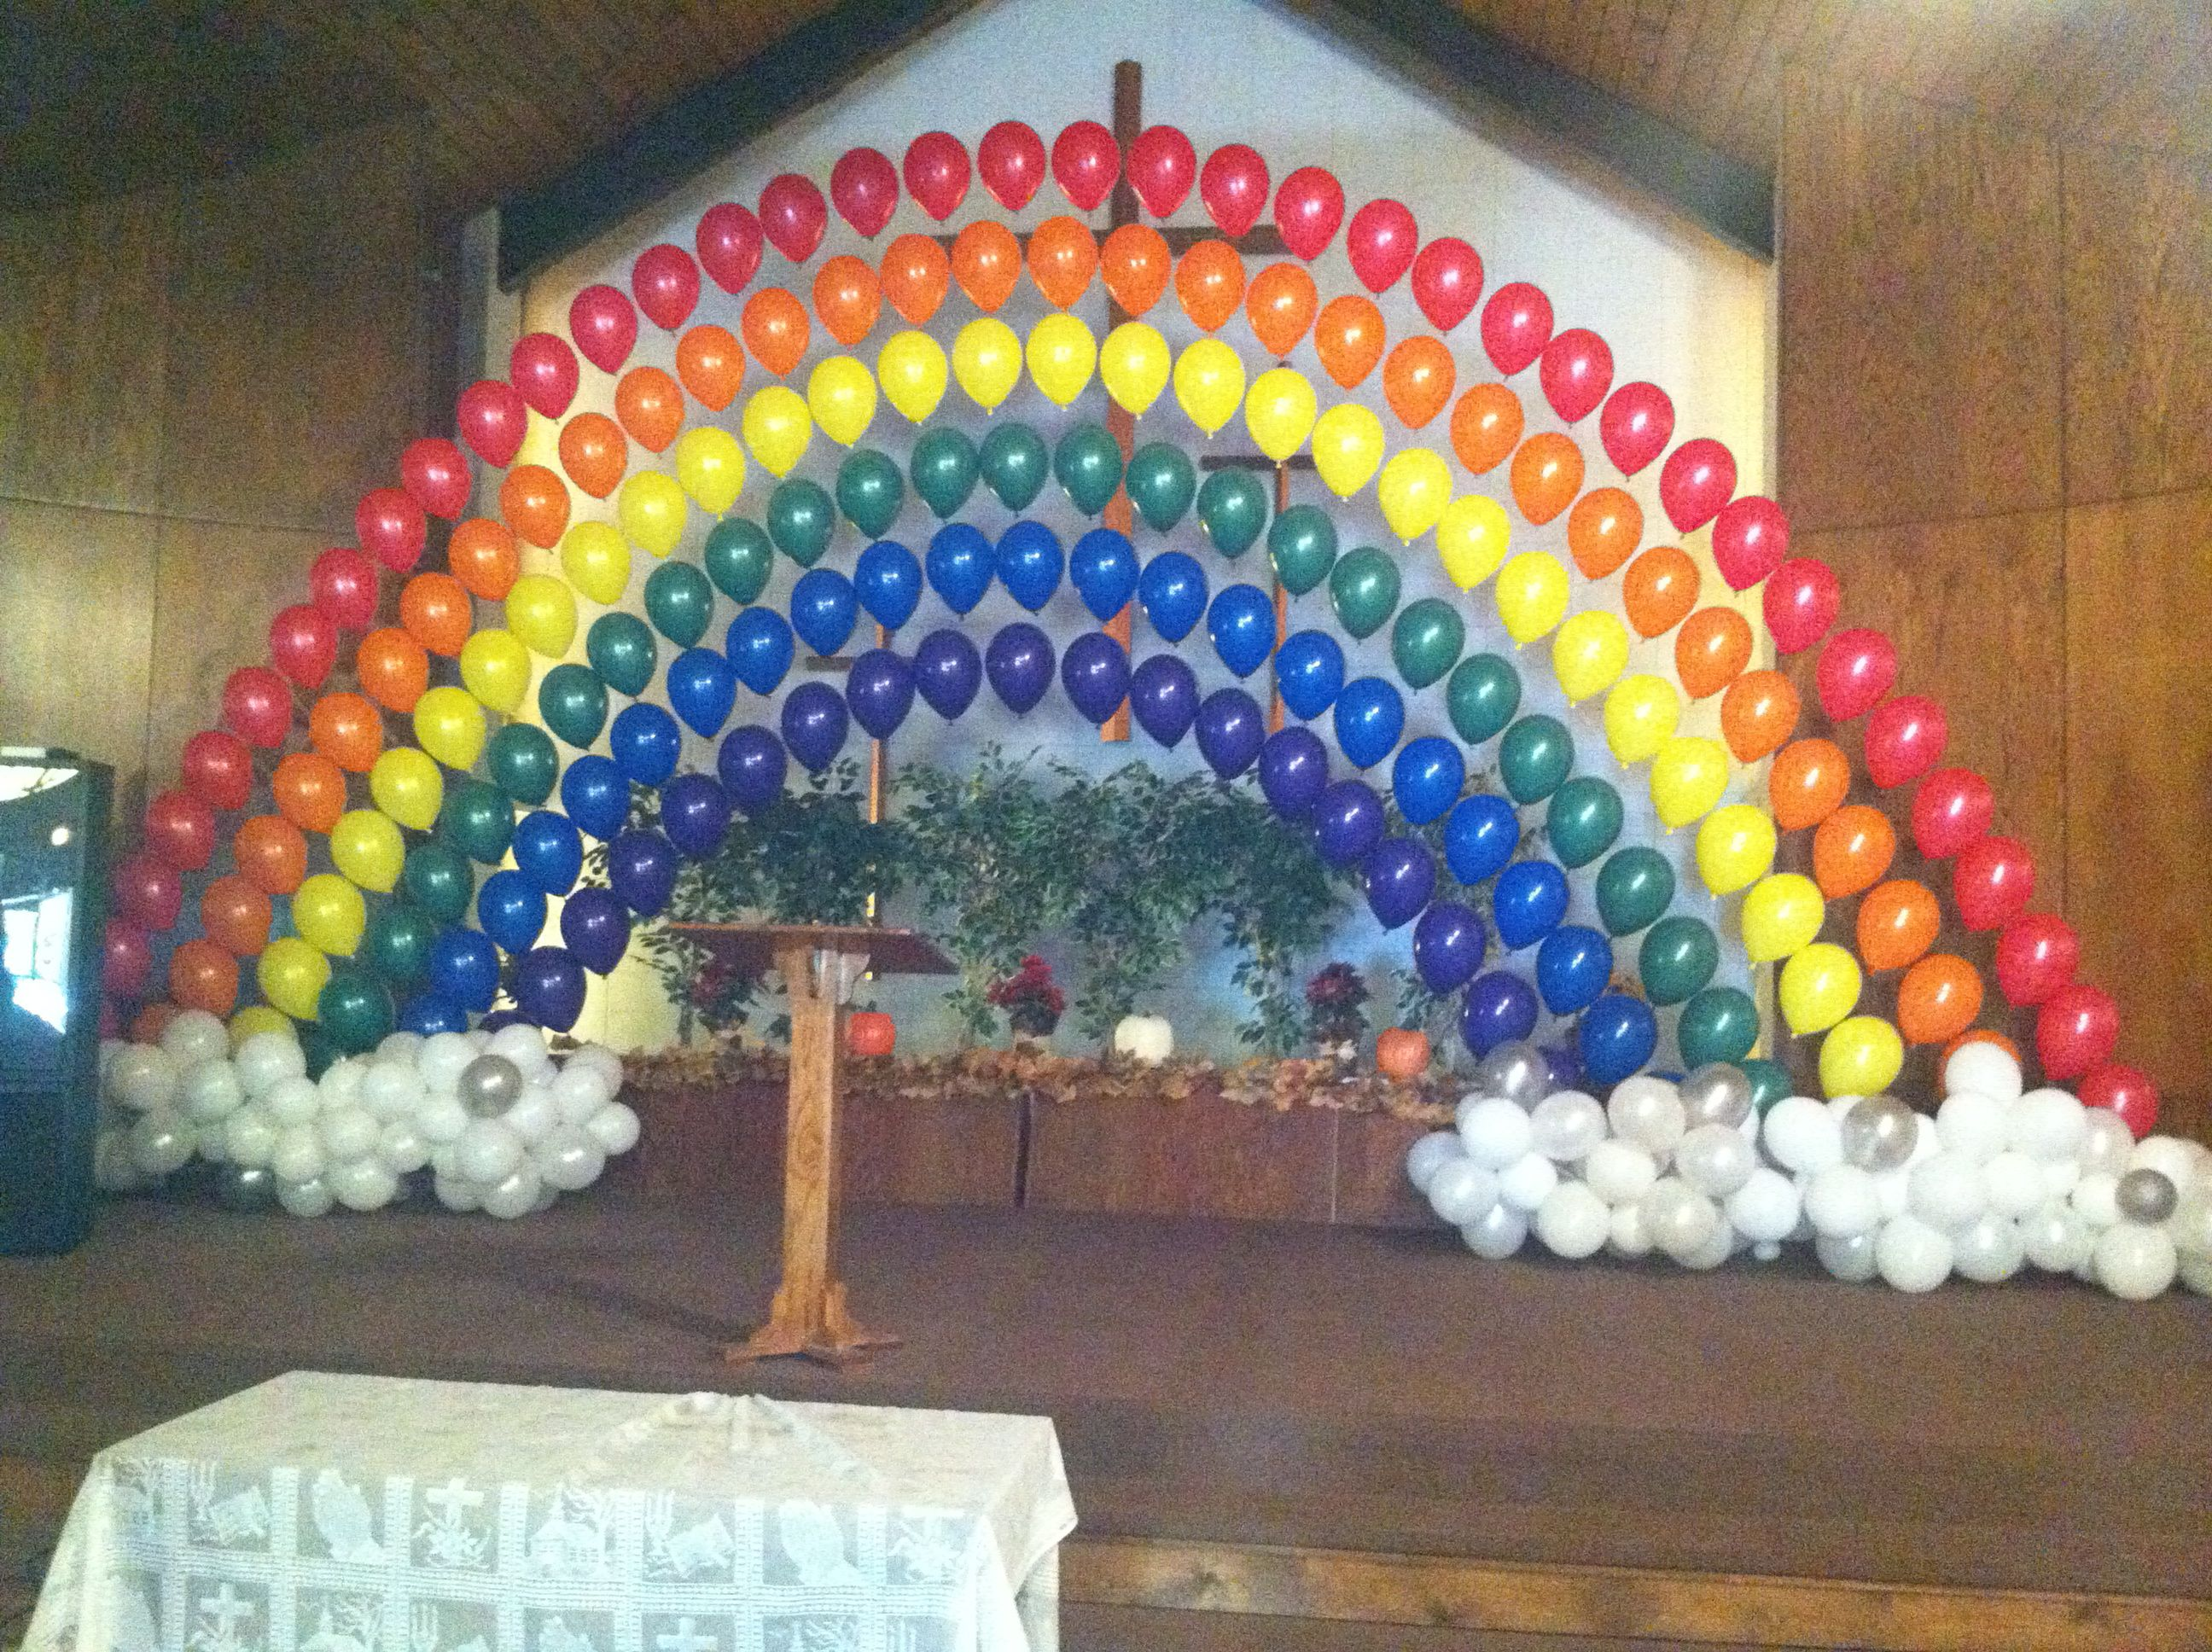 Rainbow balloon arch balloon arches decoration pinterest for Balloon arch decoration ideas